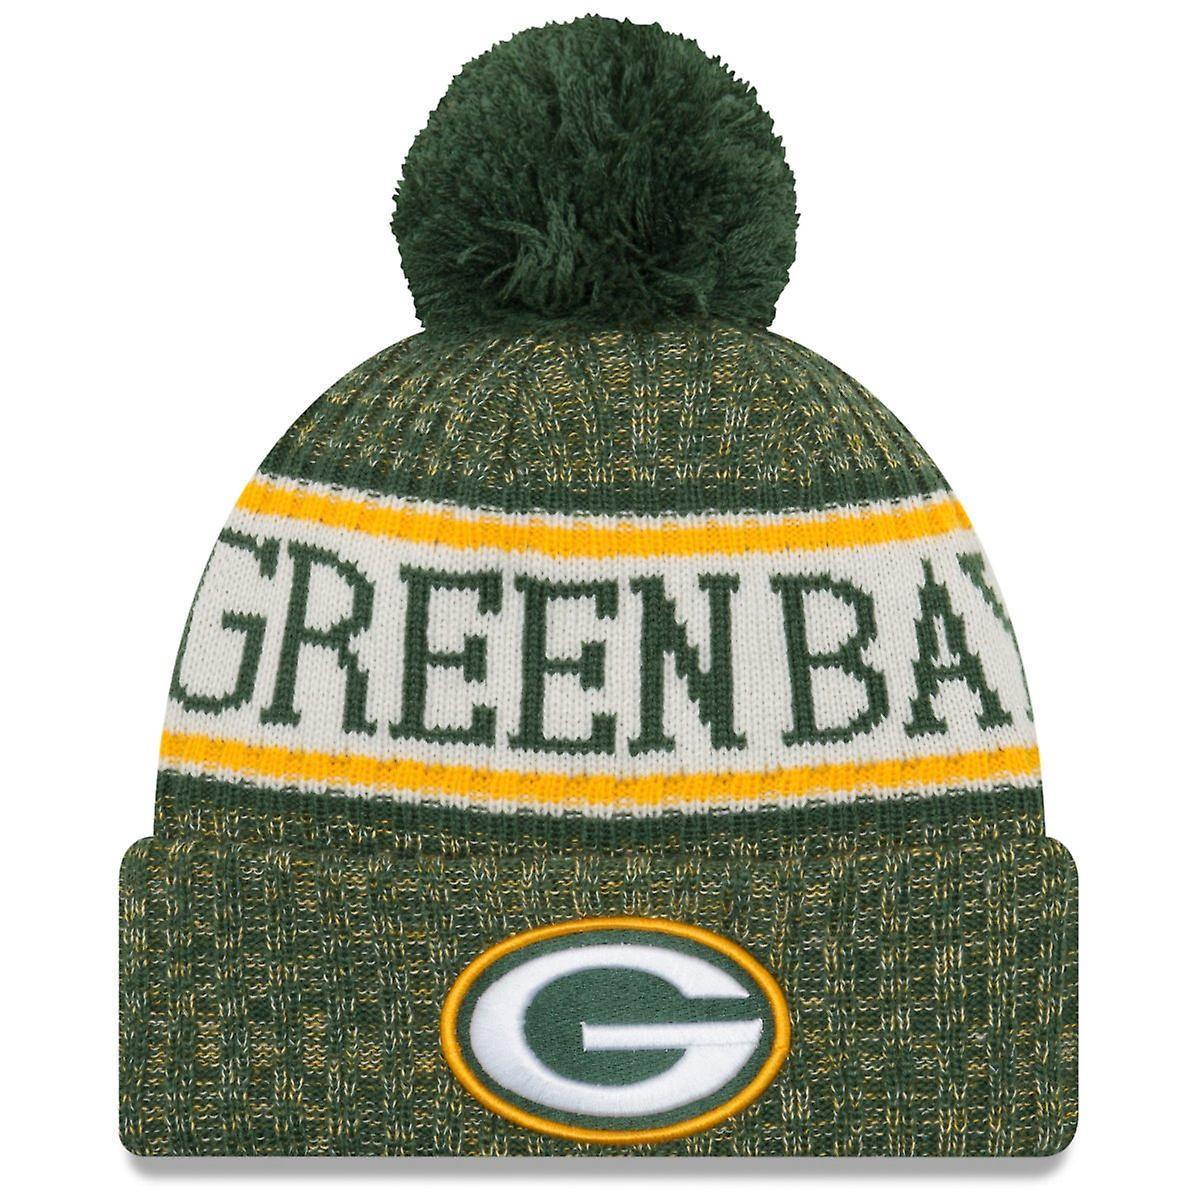 New Era - NFL knit / tuque Packers. - jacquesmoreausports